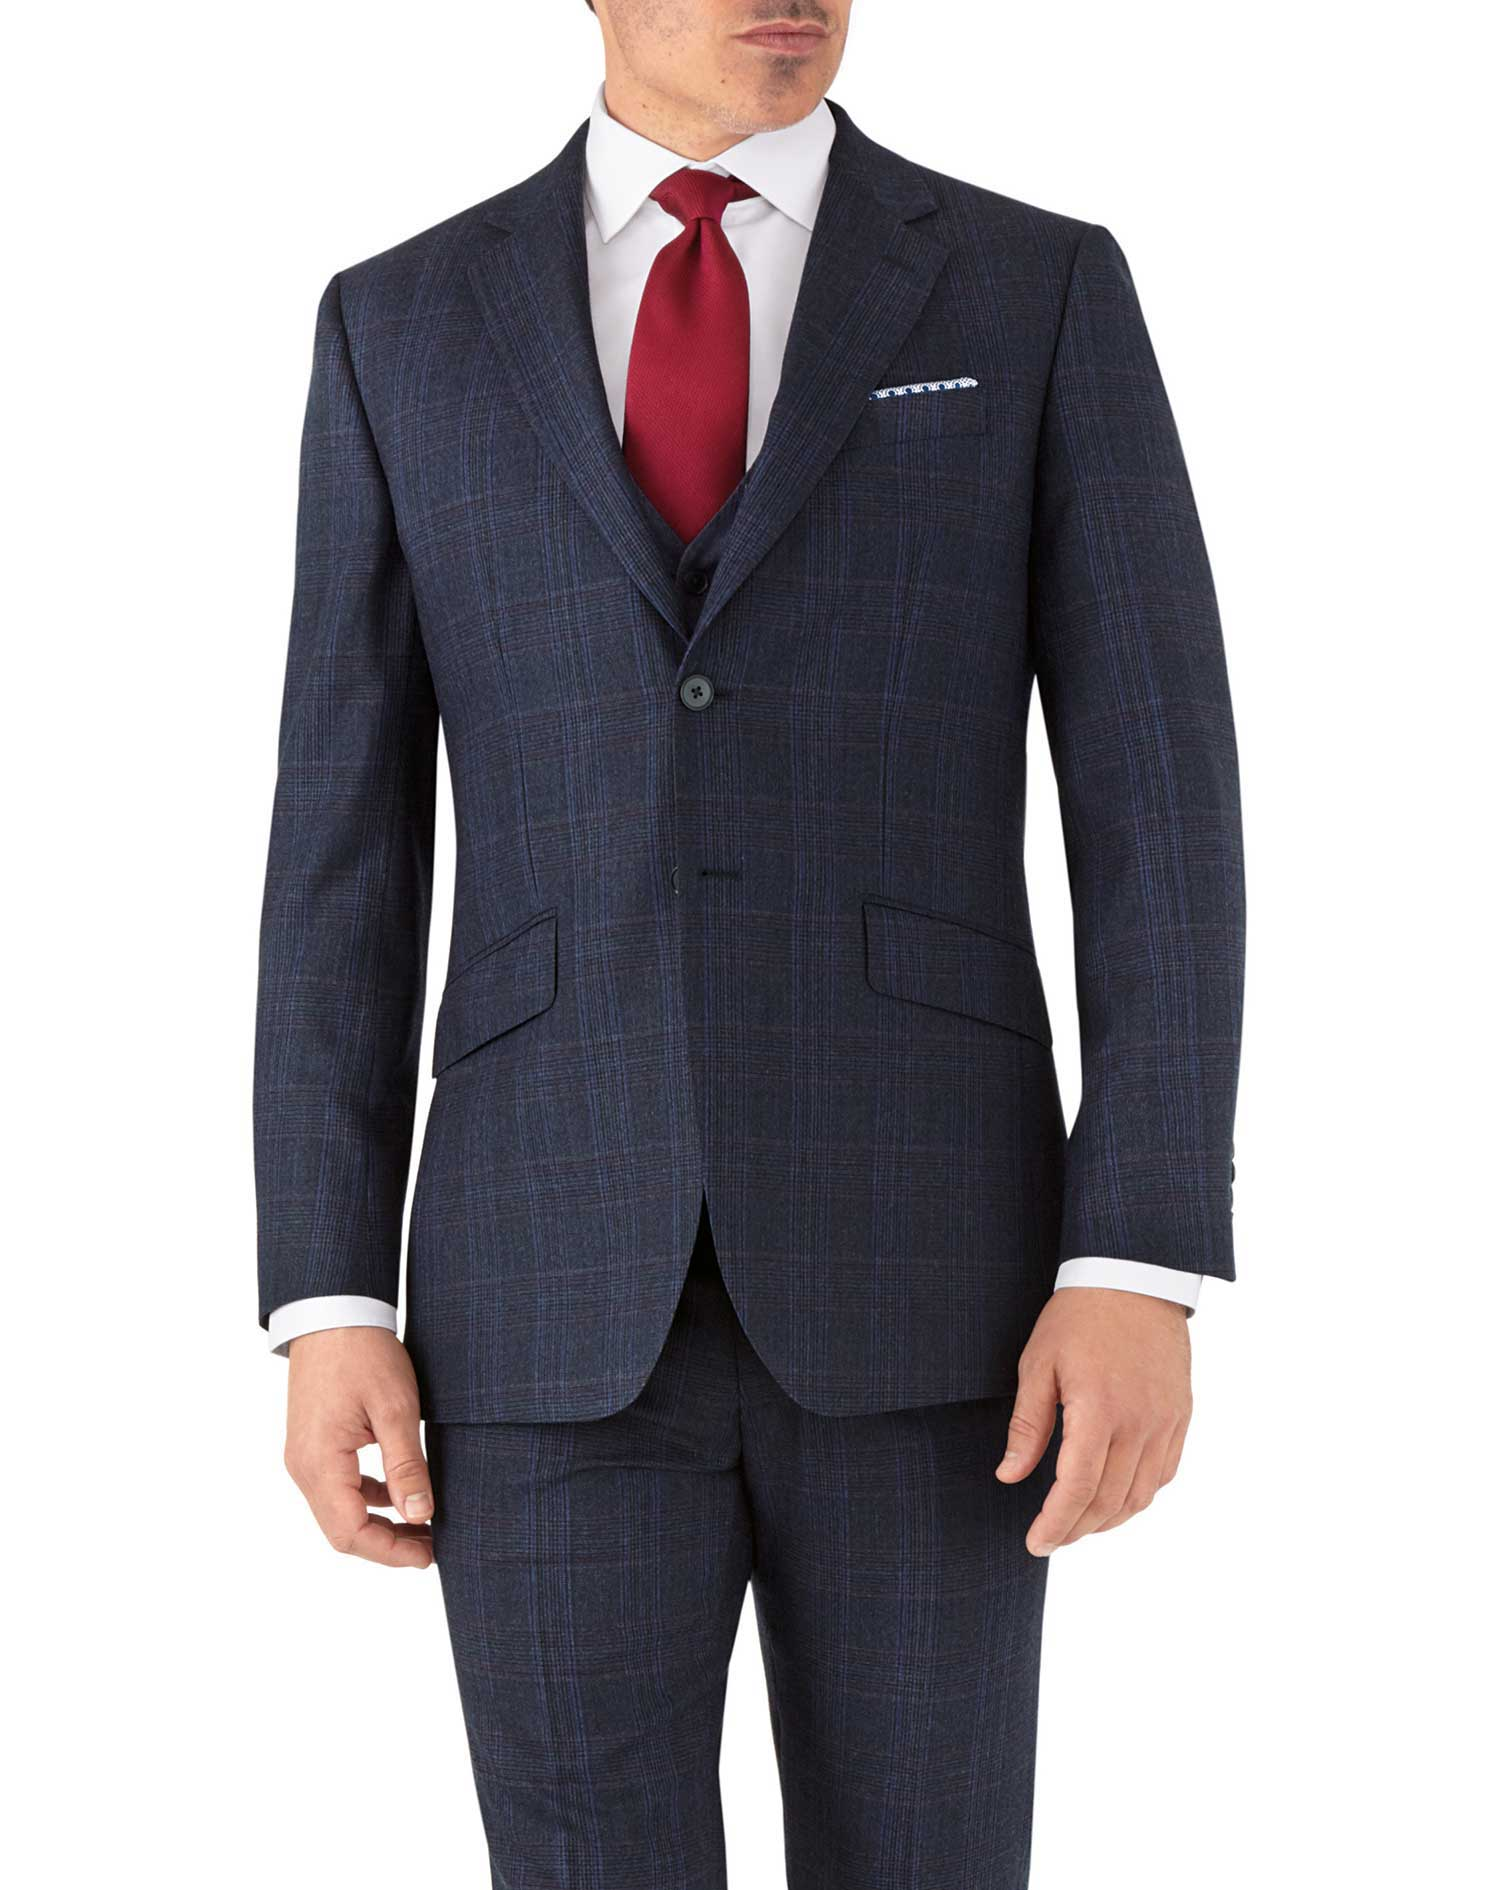 Blue Prince Of Wales Slim Fit Flannel Business Suit Wool Jacket Size 44 Long by Charles Tyrwhitt